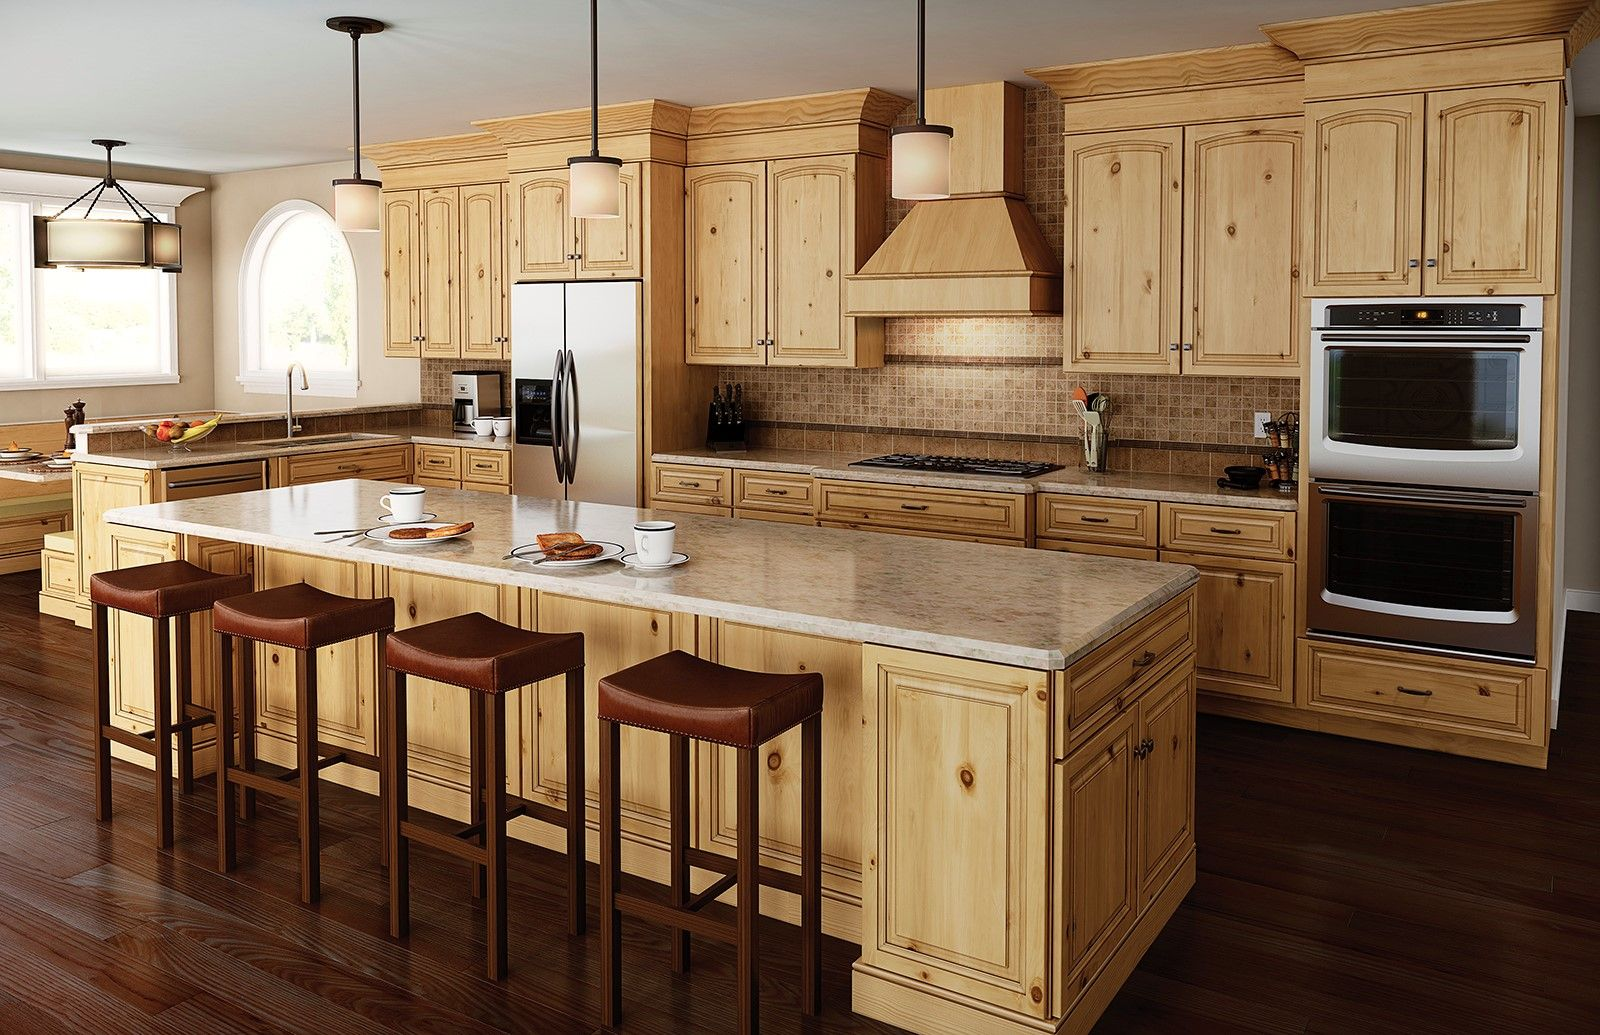 images of kitchen cabinets in natural rustic birch ...